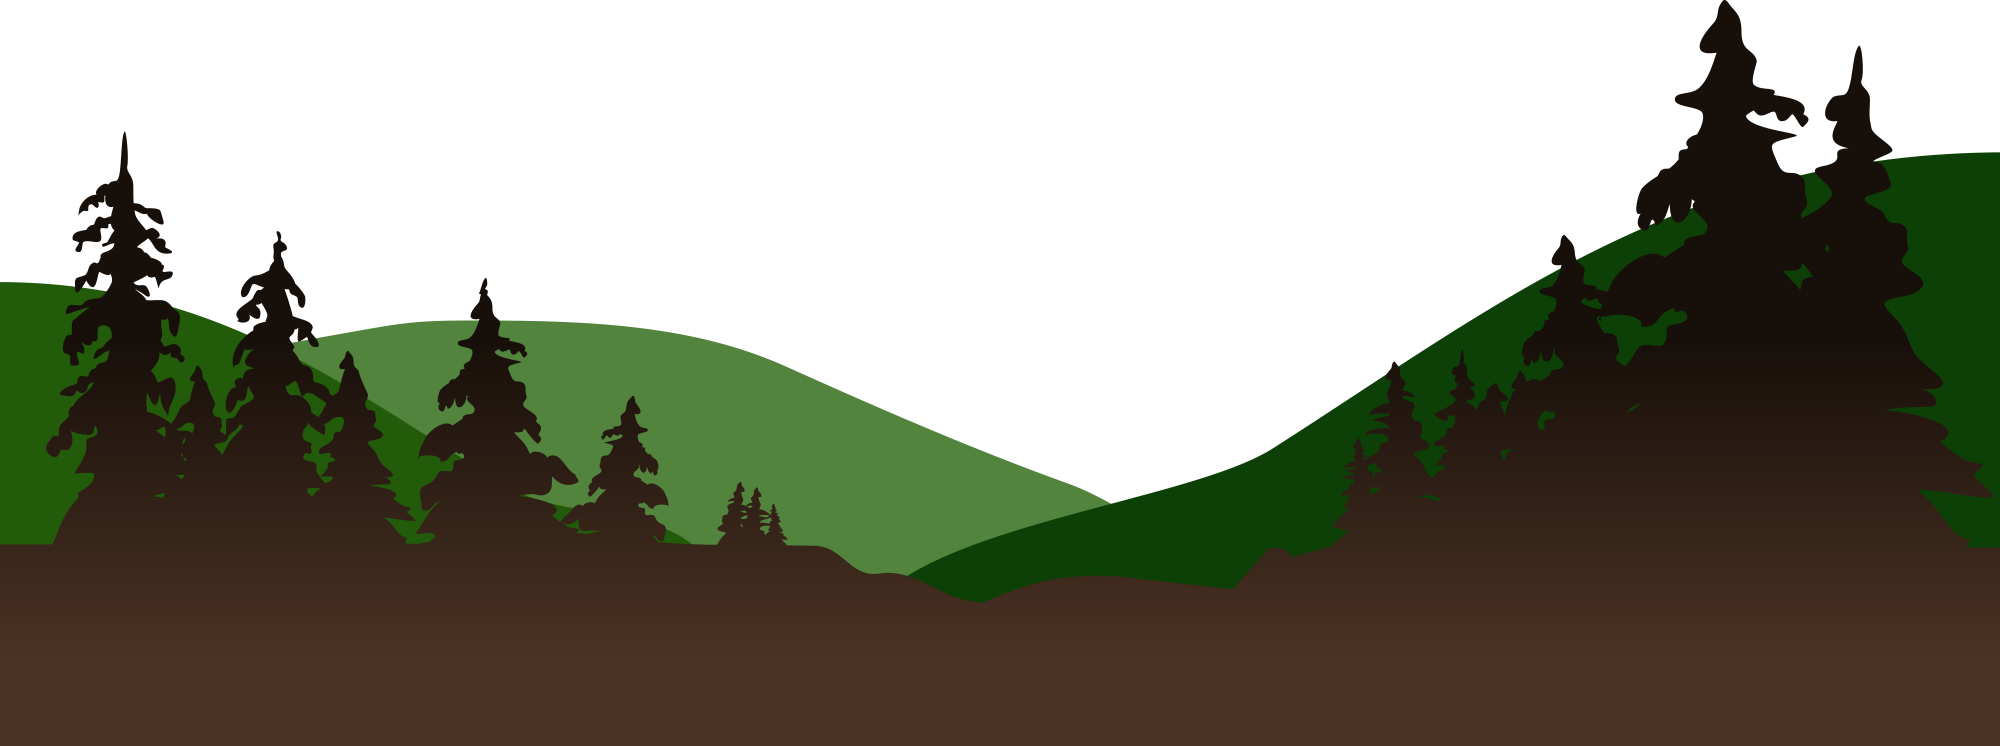 tree-overlay-2.png